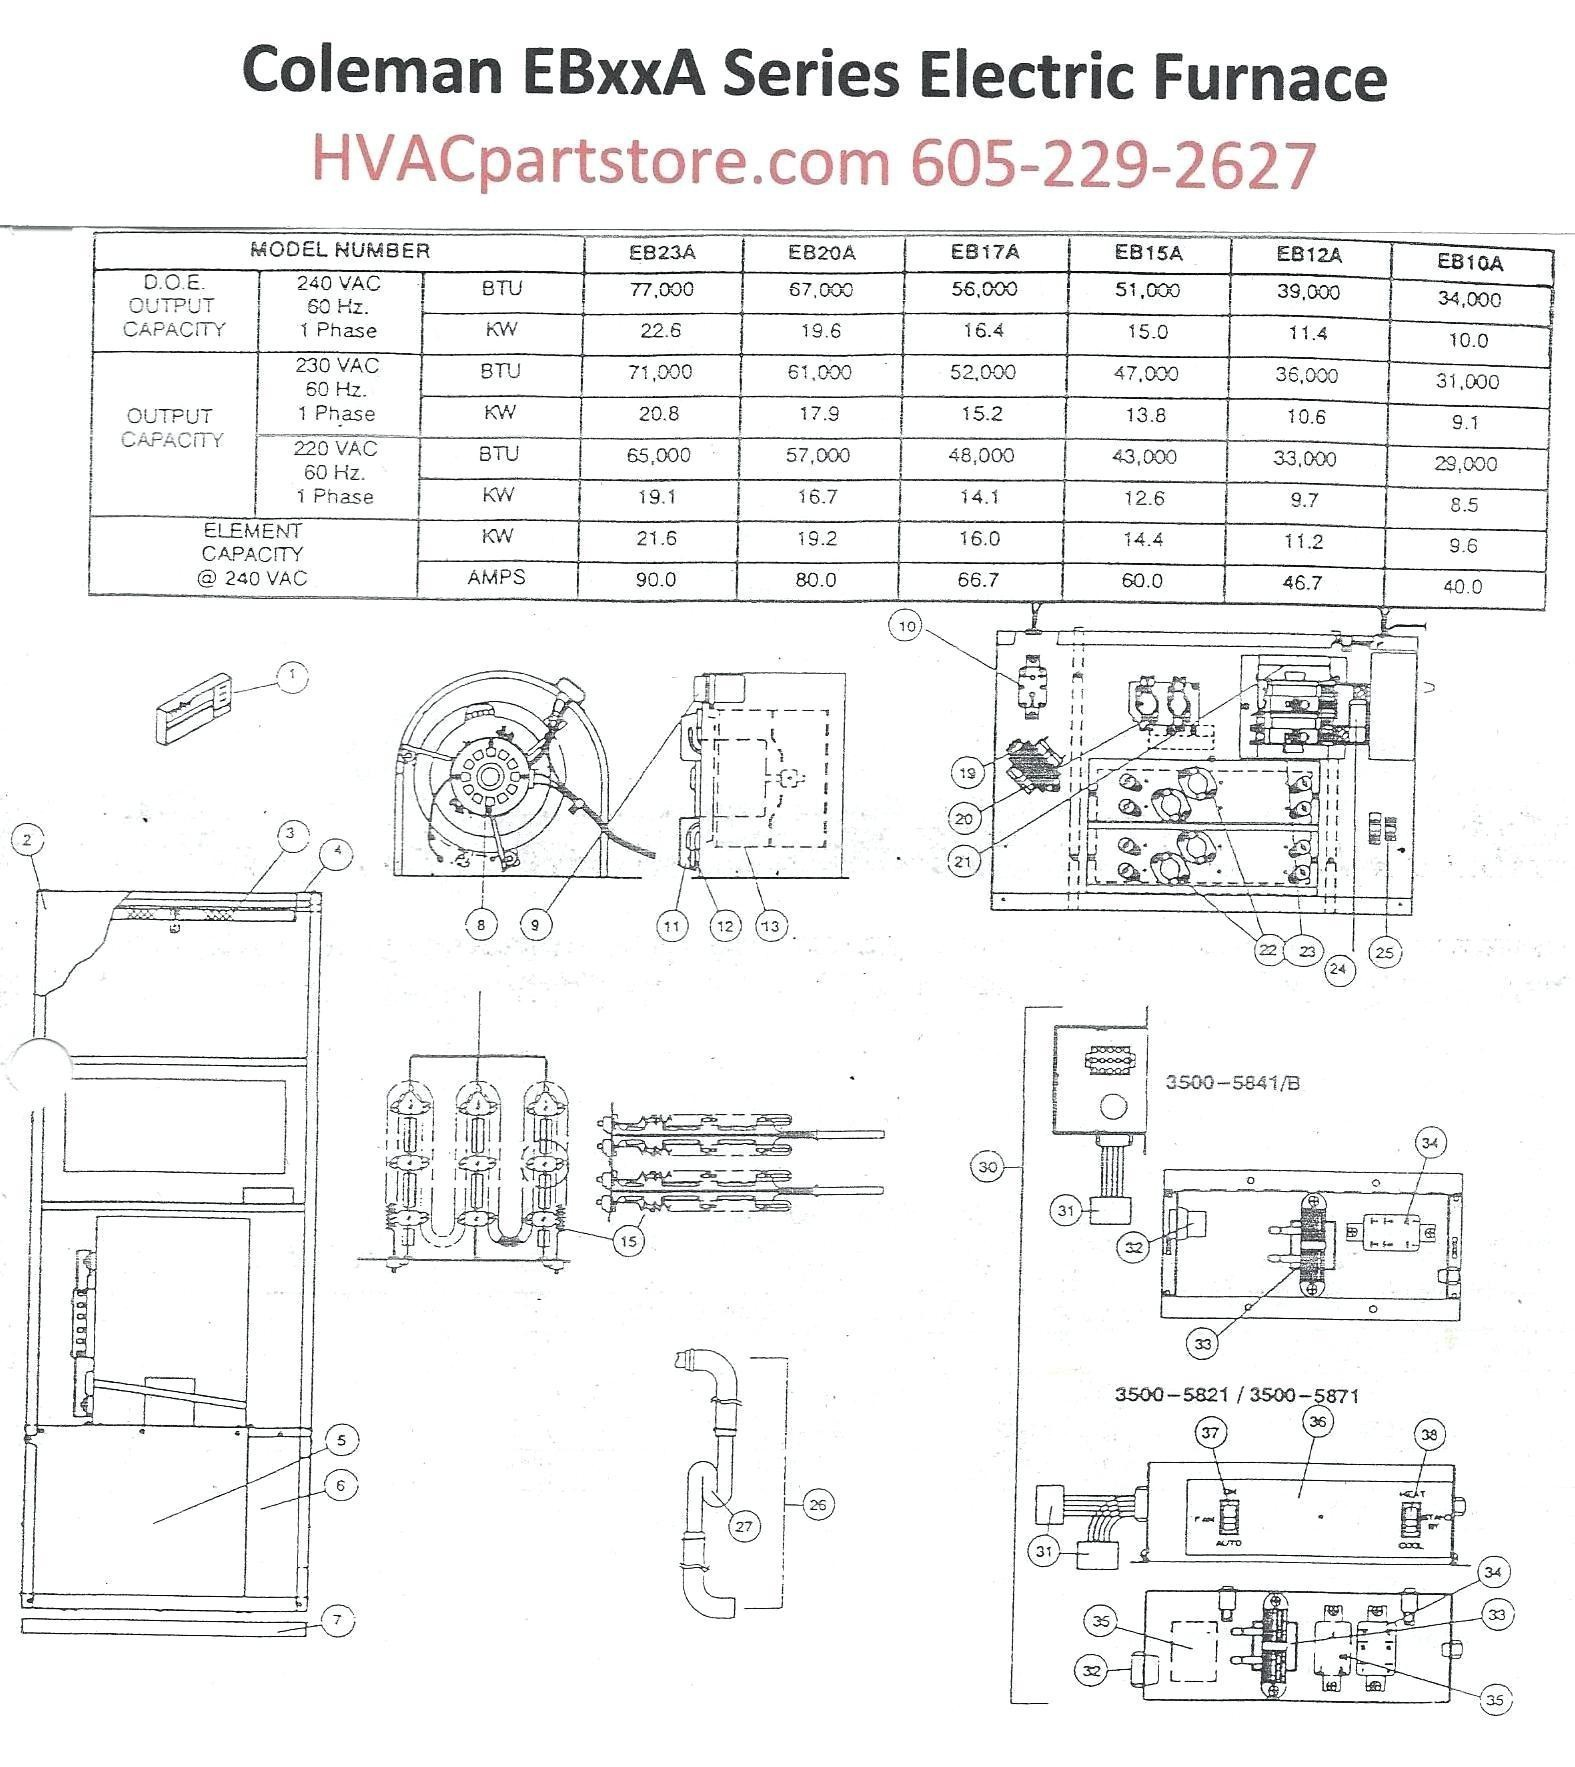 York Electric Furnace Wiring Diagram Valid York Gas Furnace Wiring Diagram Save York Electric Furnace Wiring